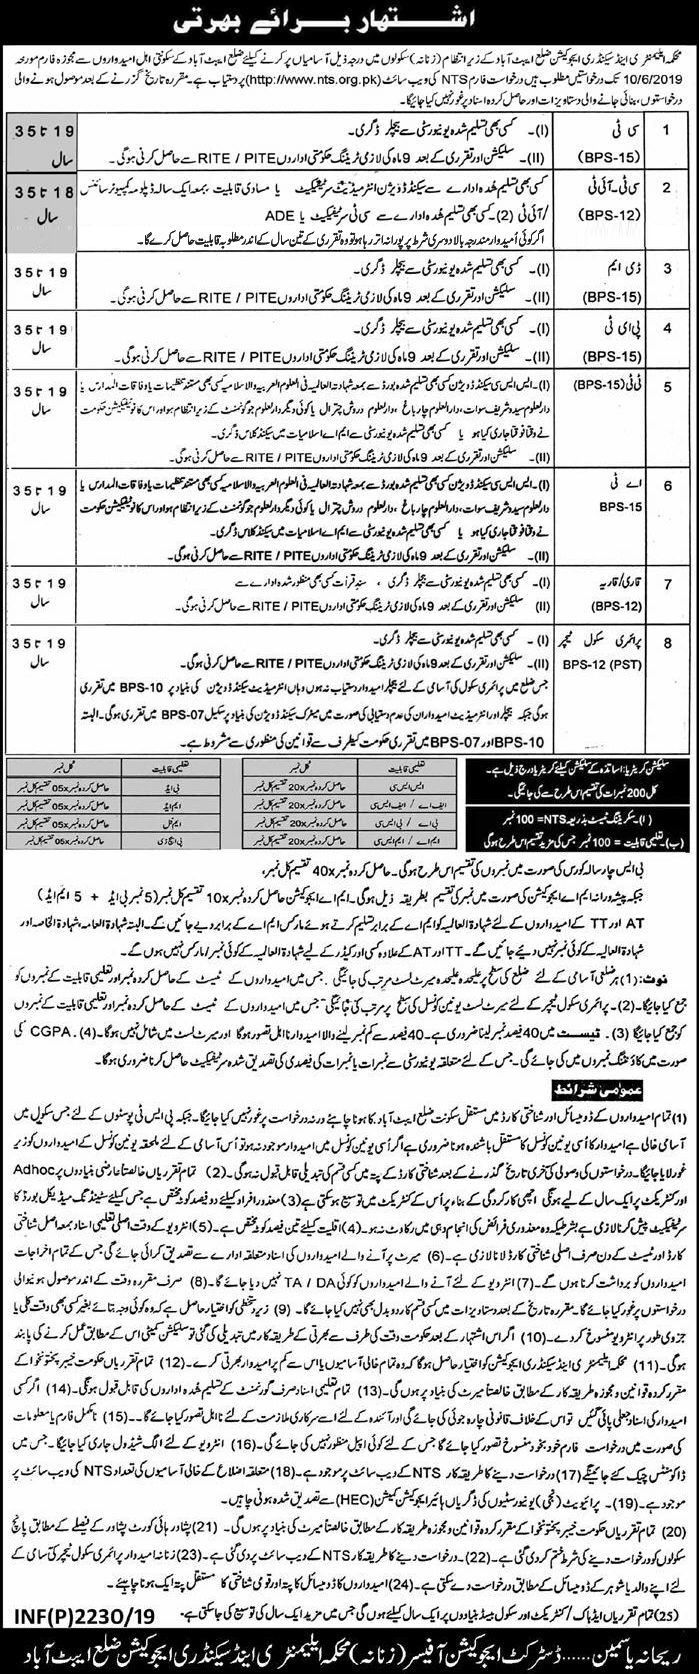 KPK Elementary and Secondary Education Department District Cadre Jobs NTS Test Answer Keys Result